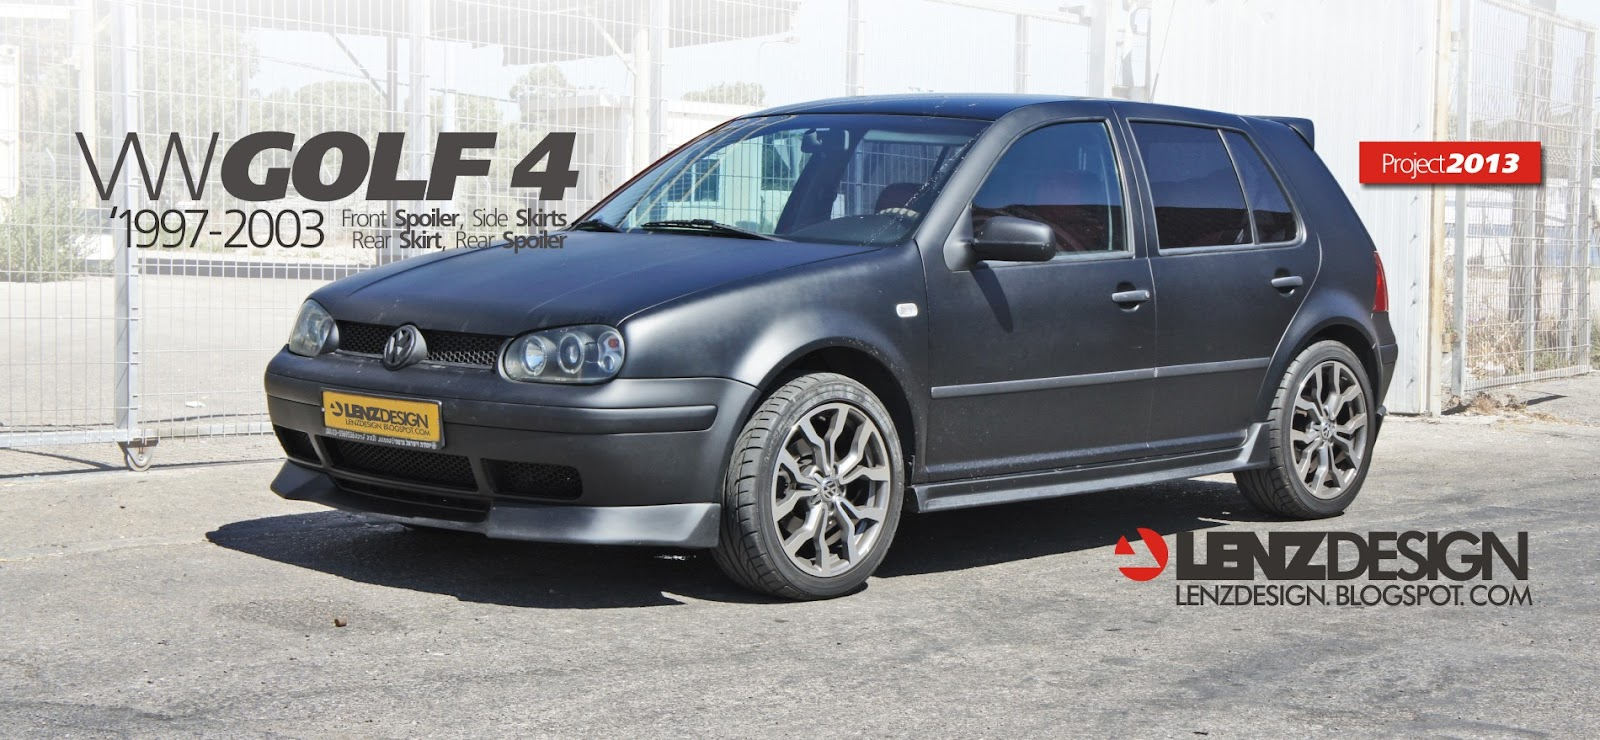 Cars For Sale In Pa >> VW Golf 4 Tuning Lenzdesign. שיפורים חיצוניים לרכב - Auto ...